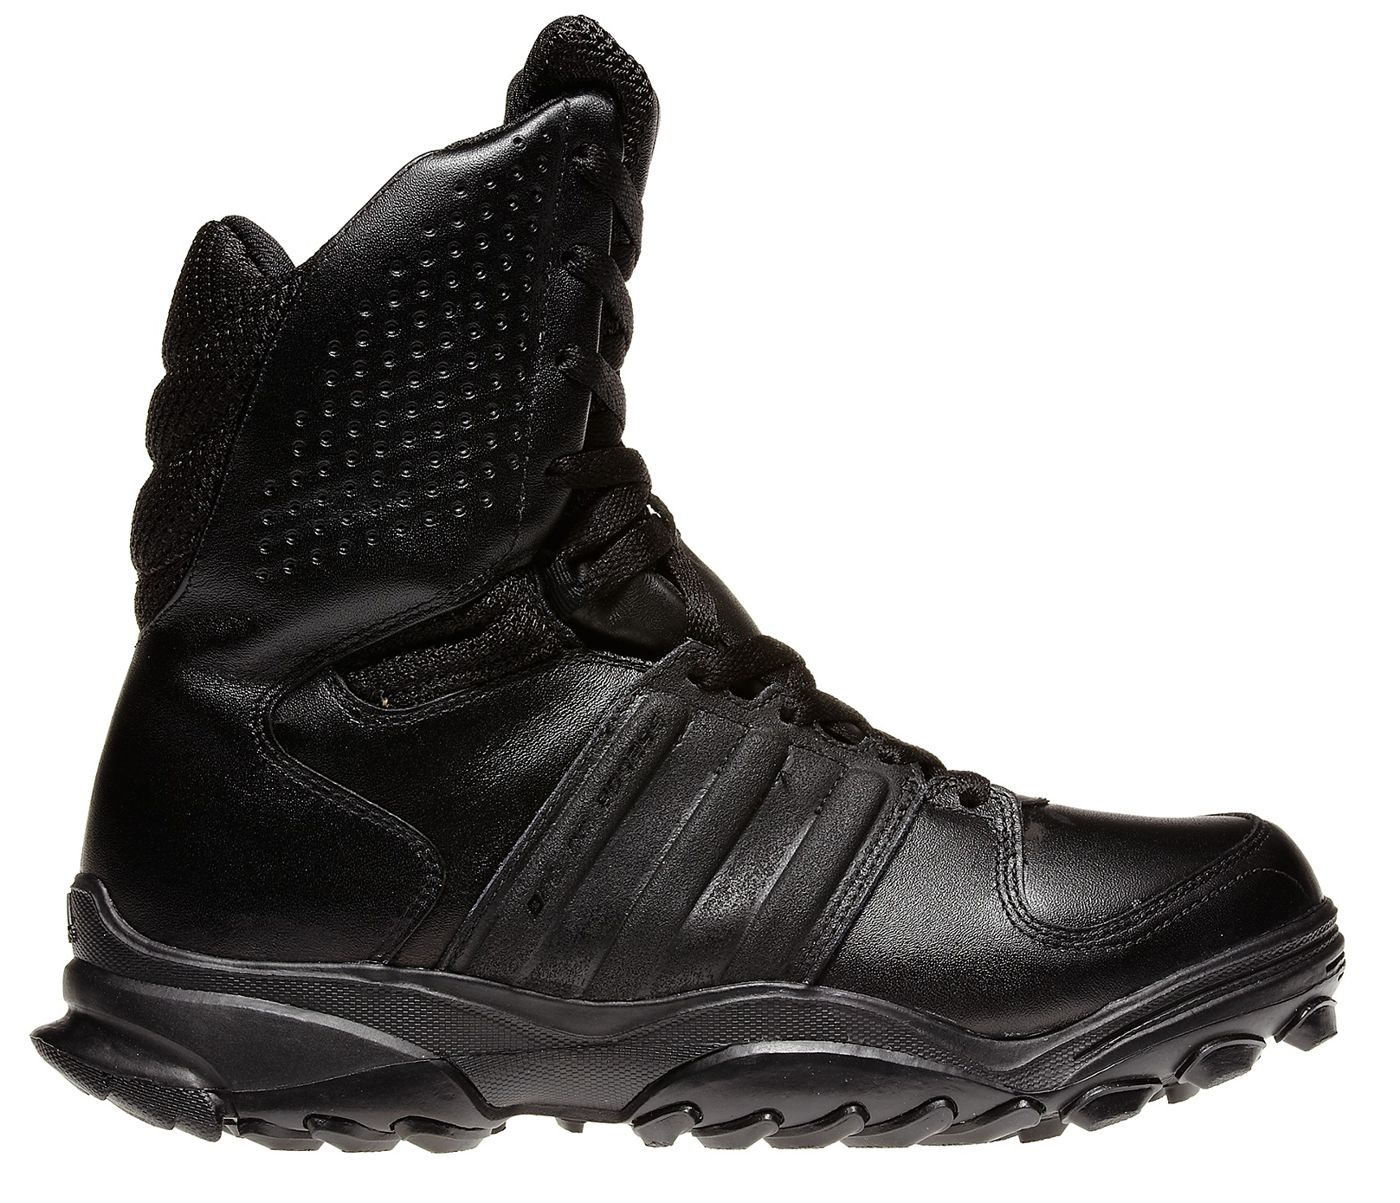 Swat Shoes For Sale